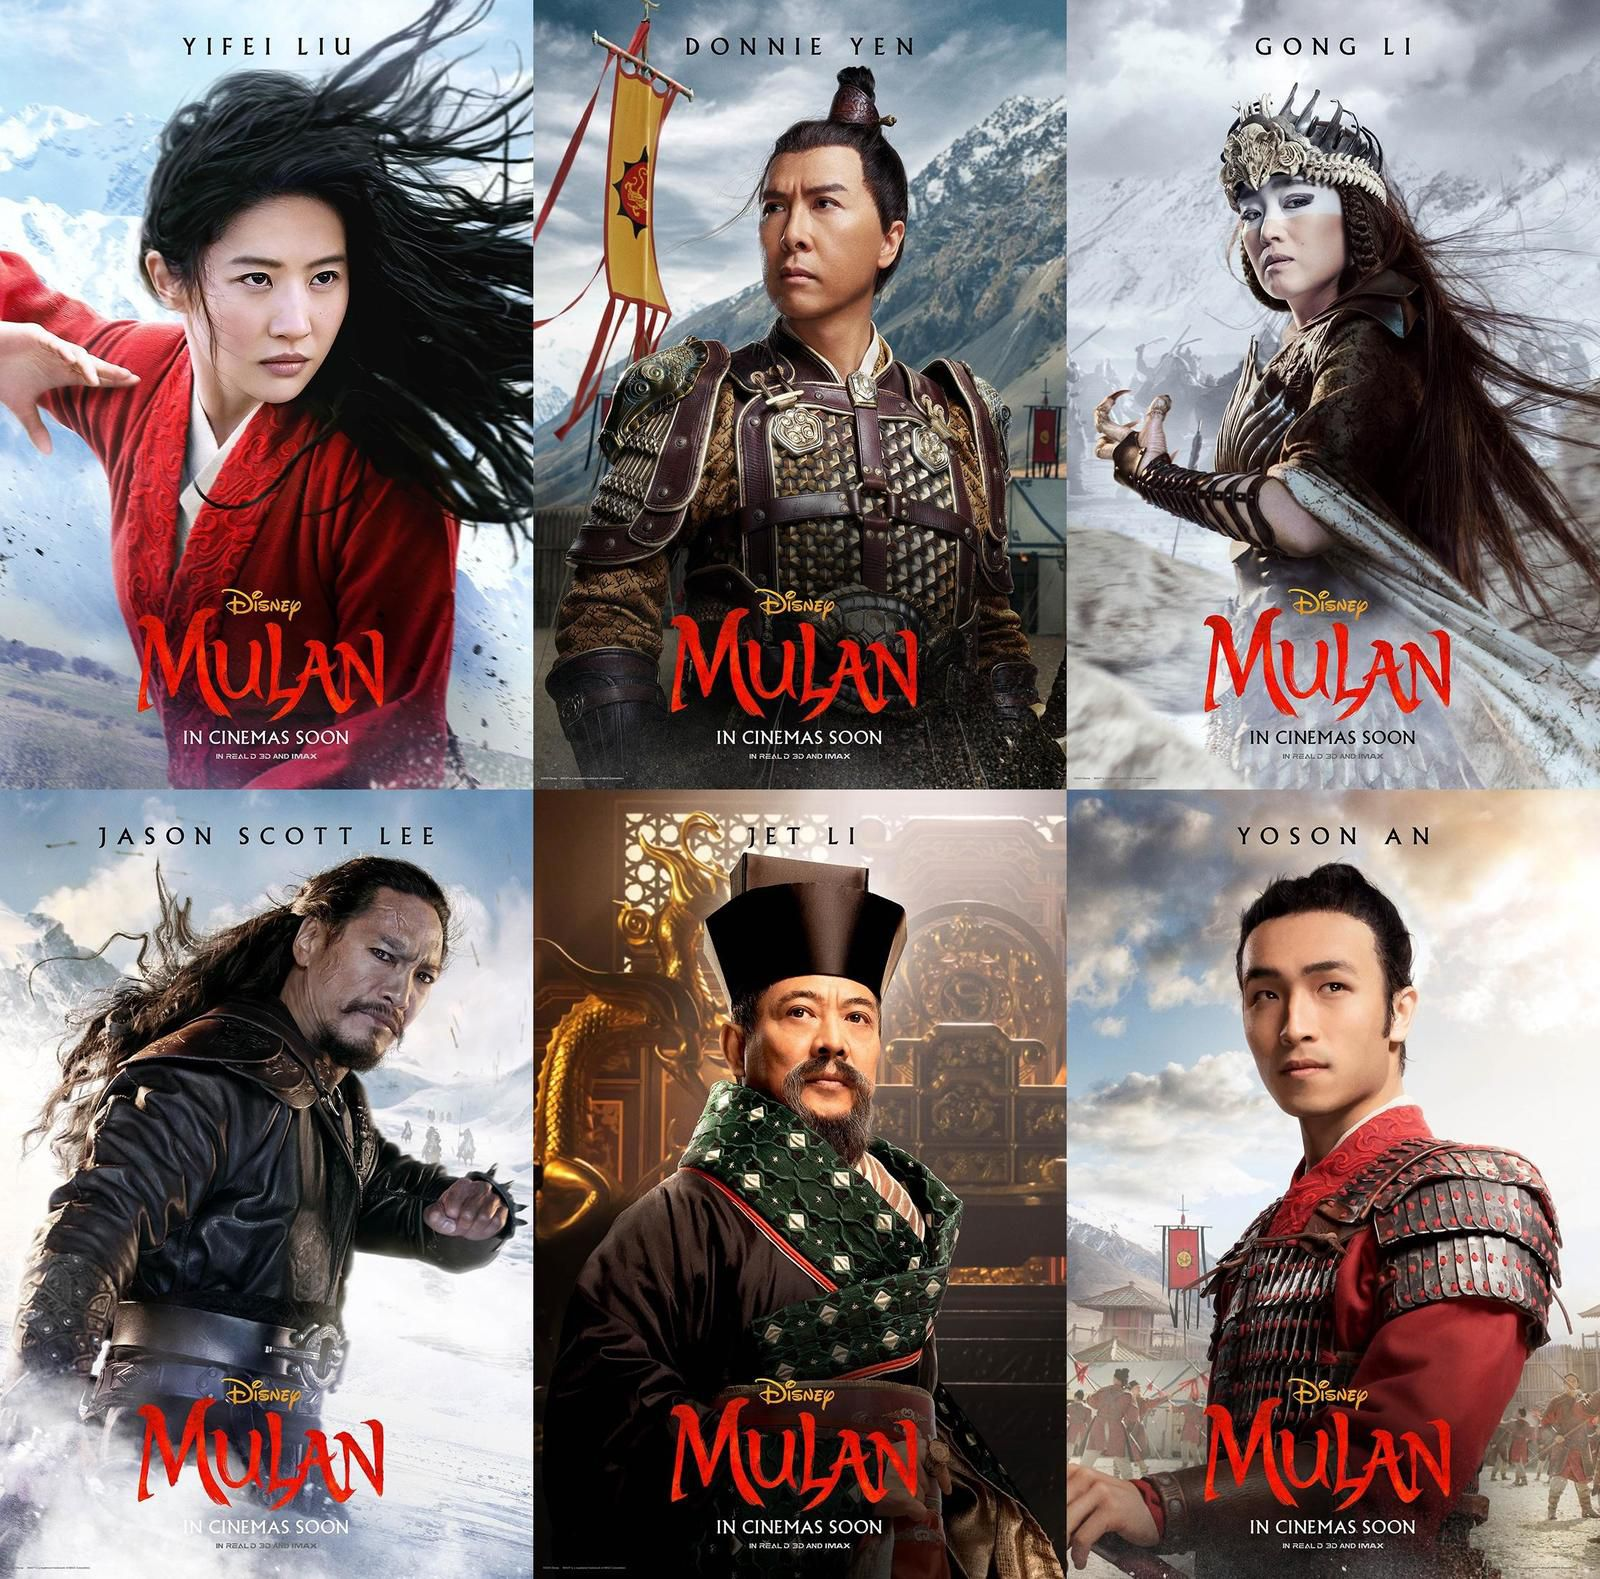 Reflections on Disney's New Mulan: Movie Review - Chinosity